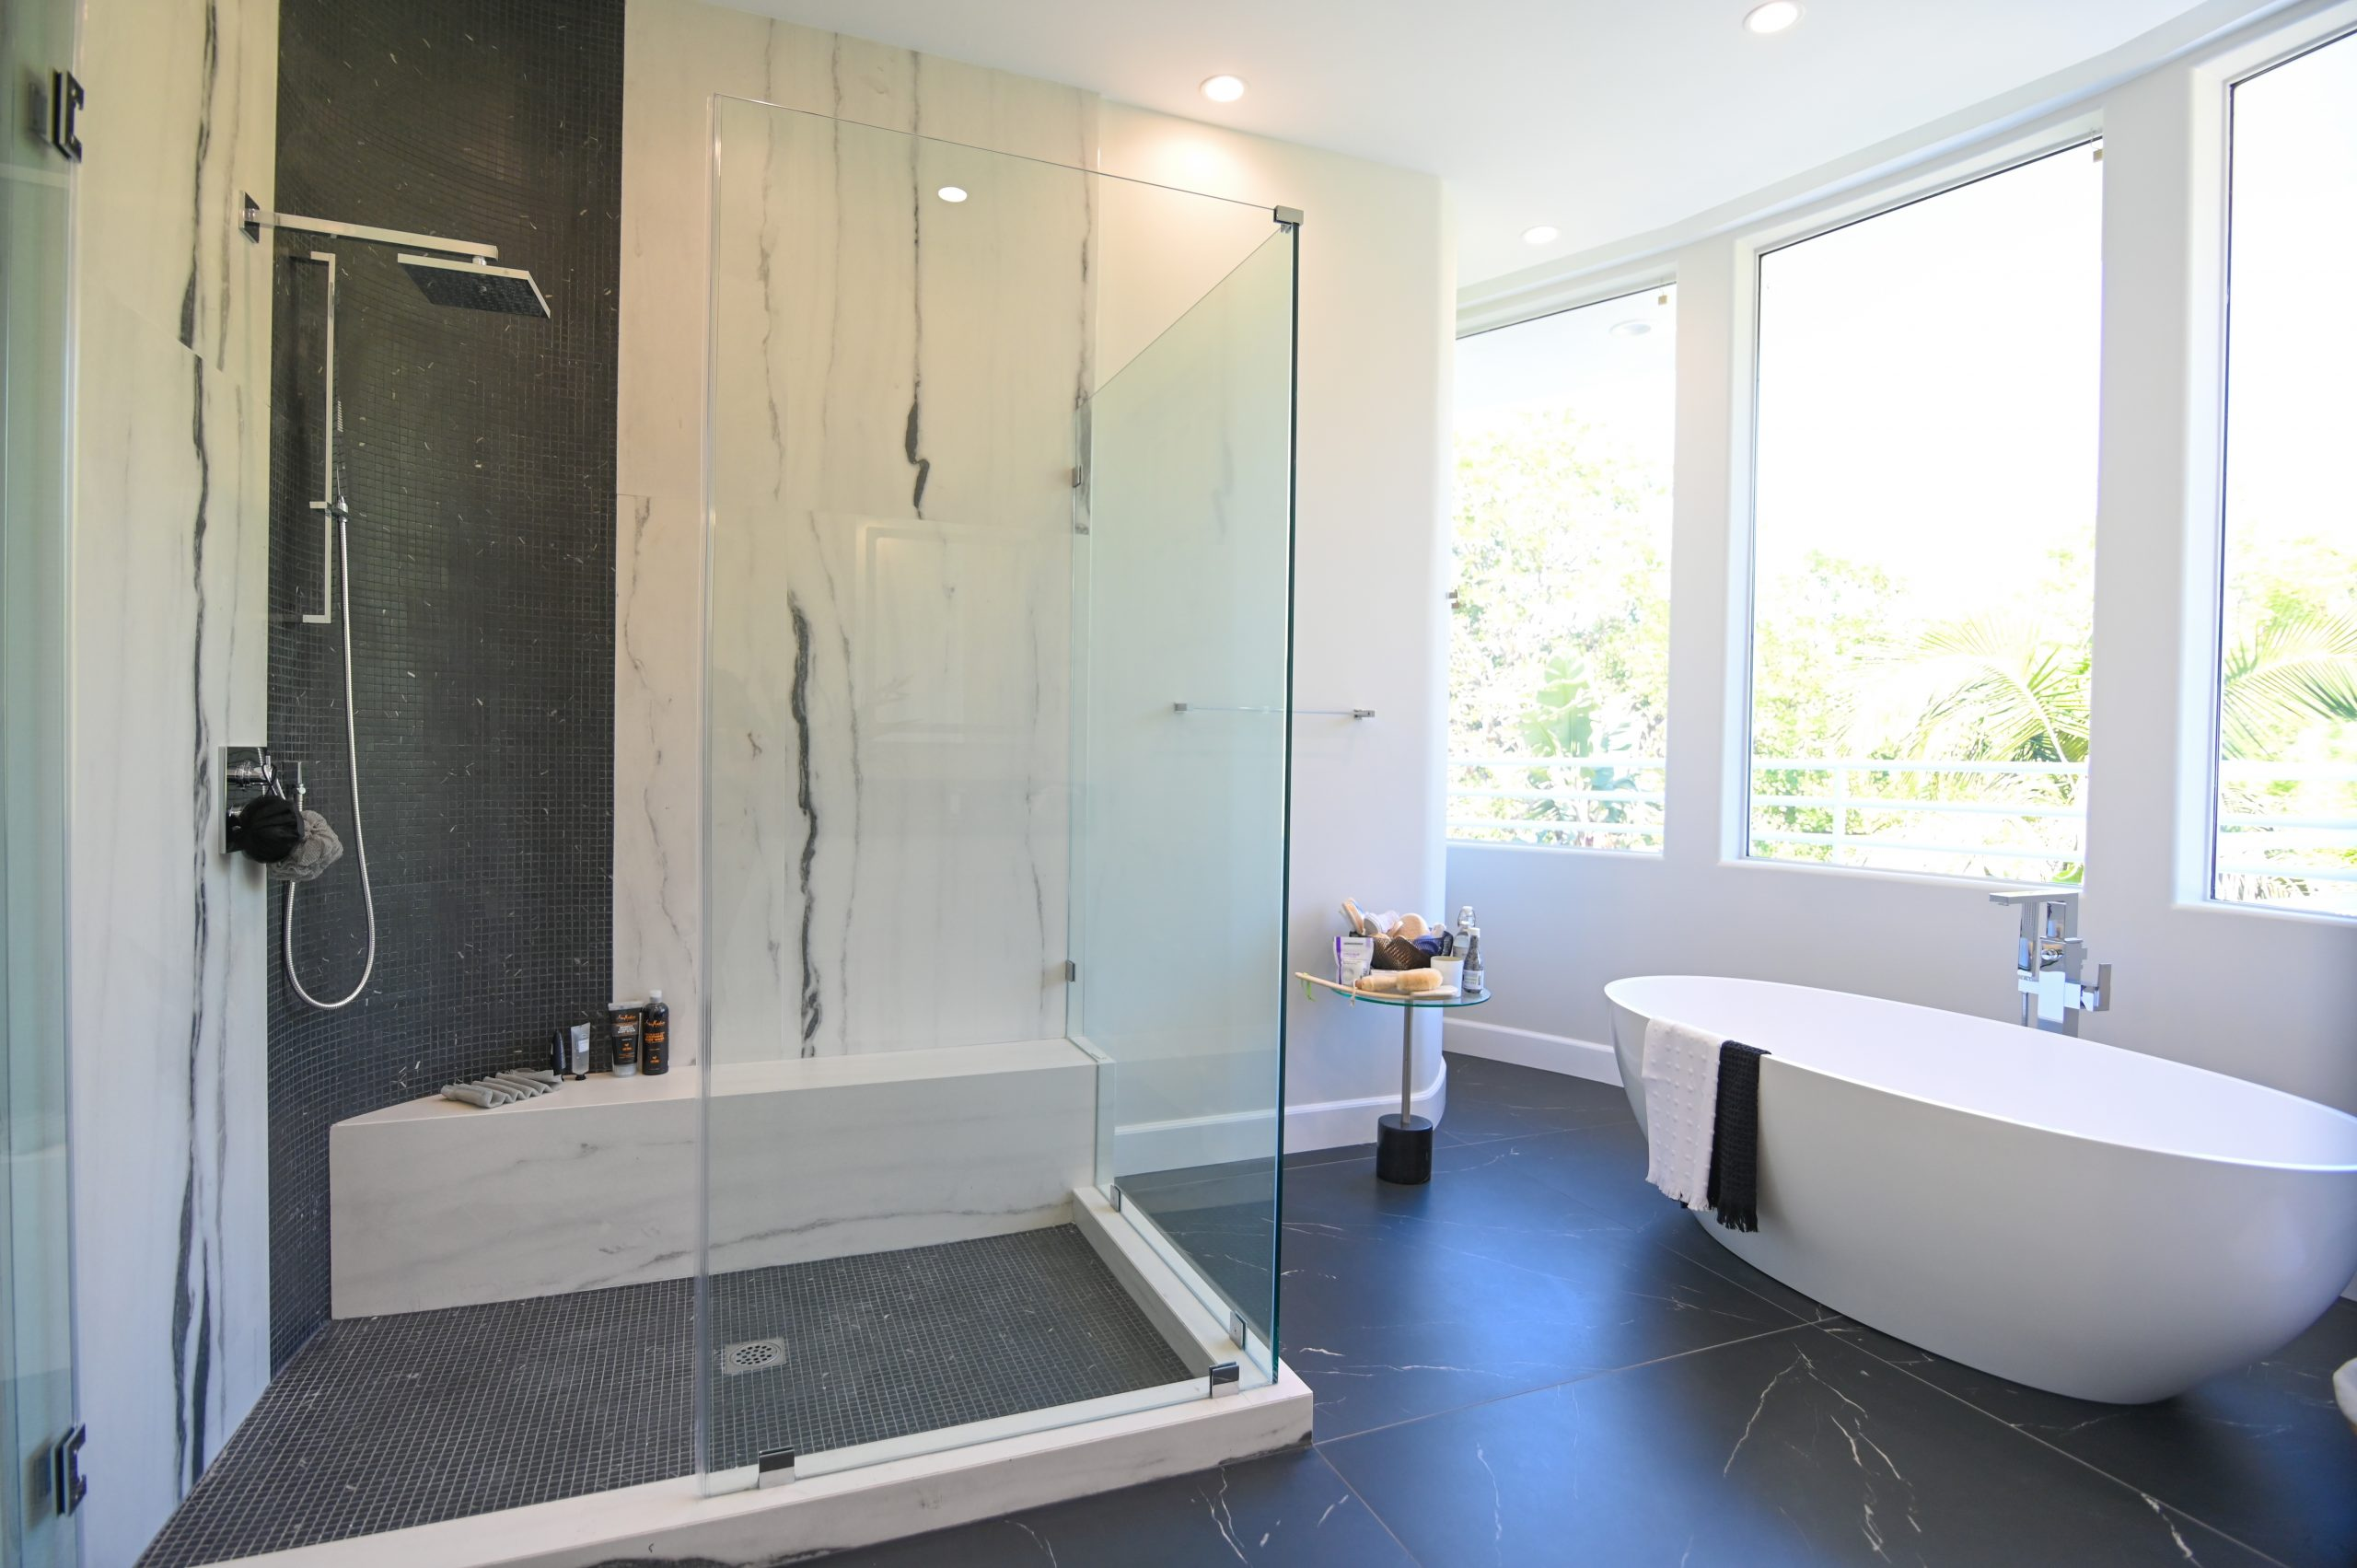 Bathroom Remodeling in Thousand Oaks, CA